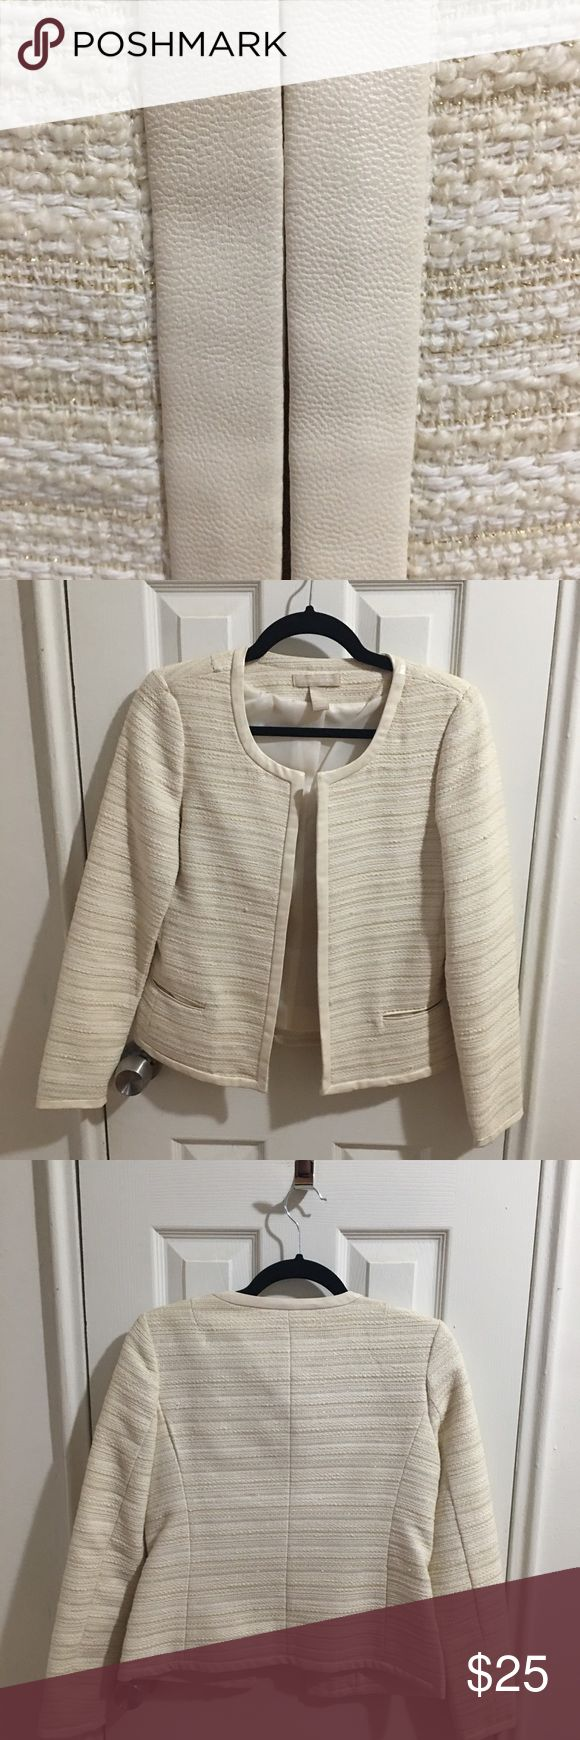 Banana Republic Tweed Jacket - Great Condition Banana Republic Tweed Jacket/Blazer. Beautiful light cream with gold threading/accents throughout fabric. Vegan leather piping on cuffs and lapel. Small snag (visible in photo on left side) in Tweed fabric in front. Otherwise in excellent condition. Great for fall/winter (chilly spring day) dress up or down, personally love and wore a few times but gained some weight :( and it's a bit too tight across the back for me (no stretch). Banana…